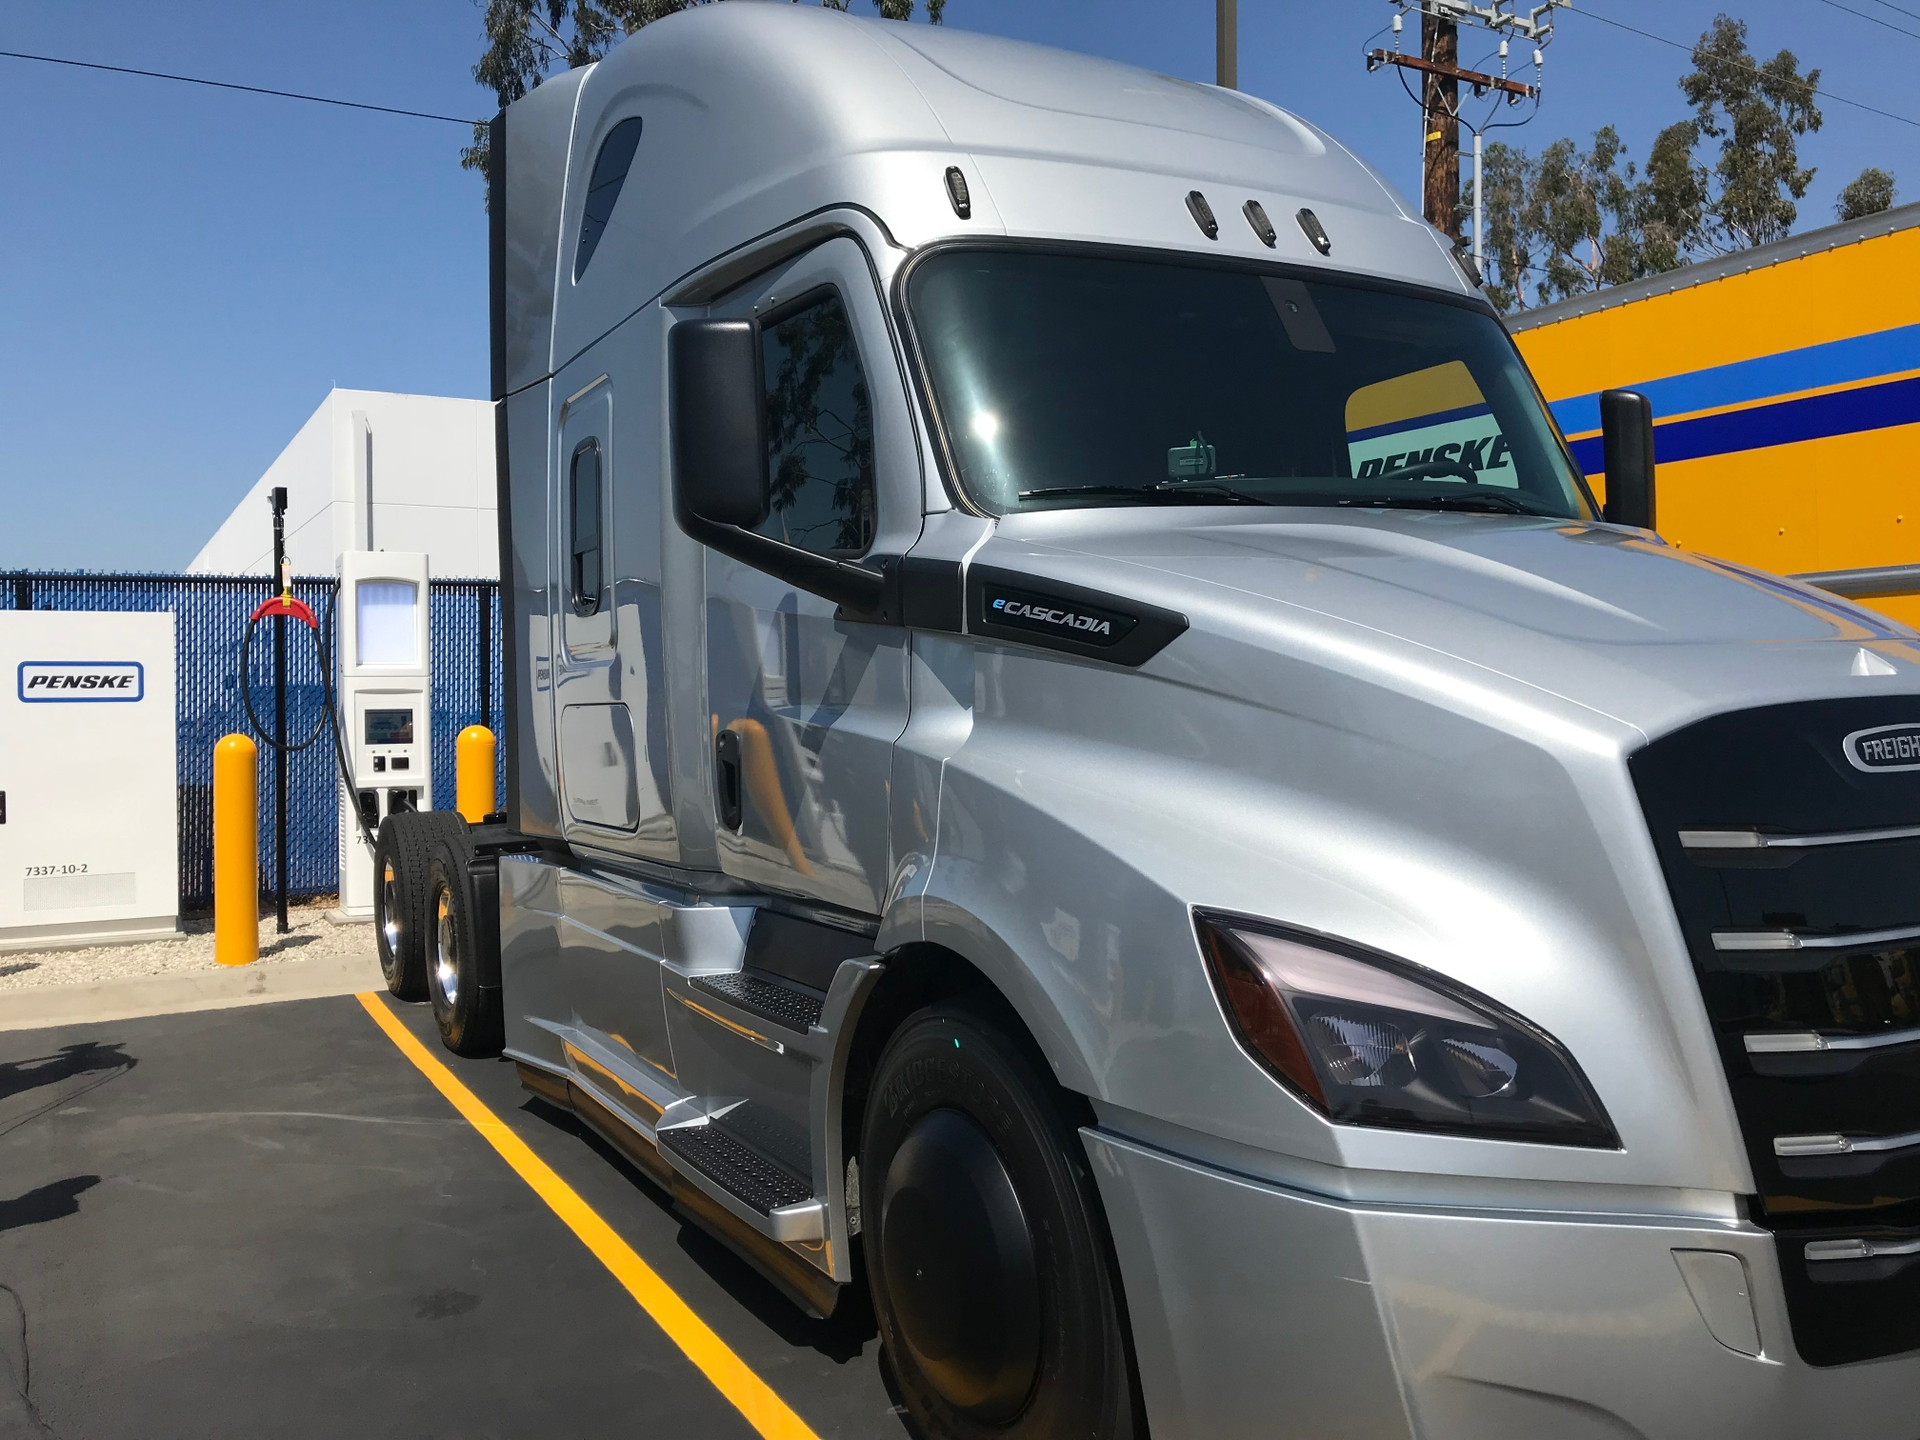 Electric trucks and buses can deliver the largest reductions in greenhouse gas and pollution and are essential for meeting California climate and air quality targets, new study says.